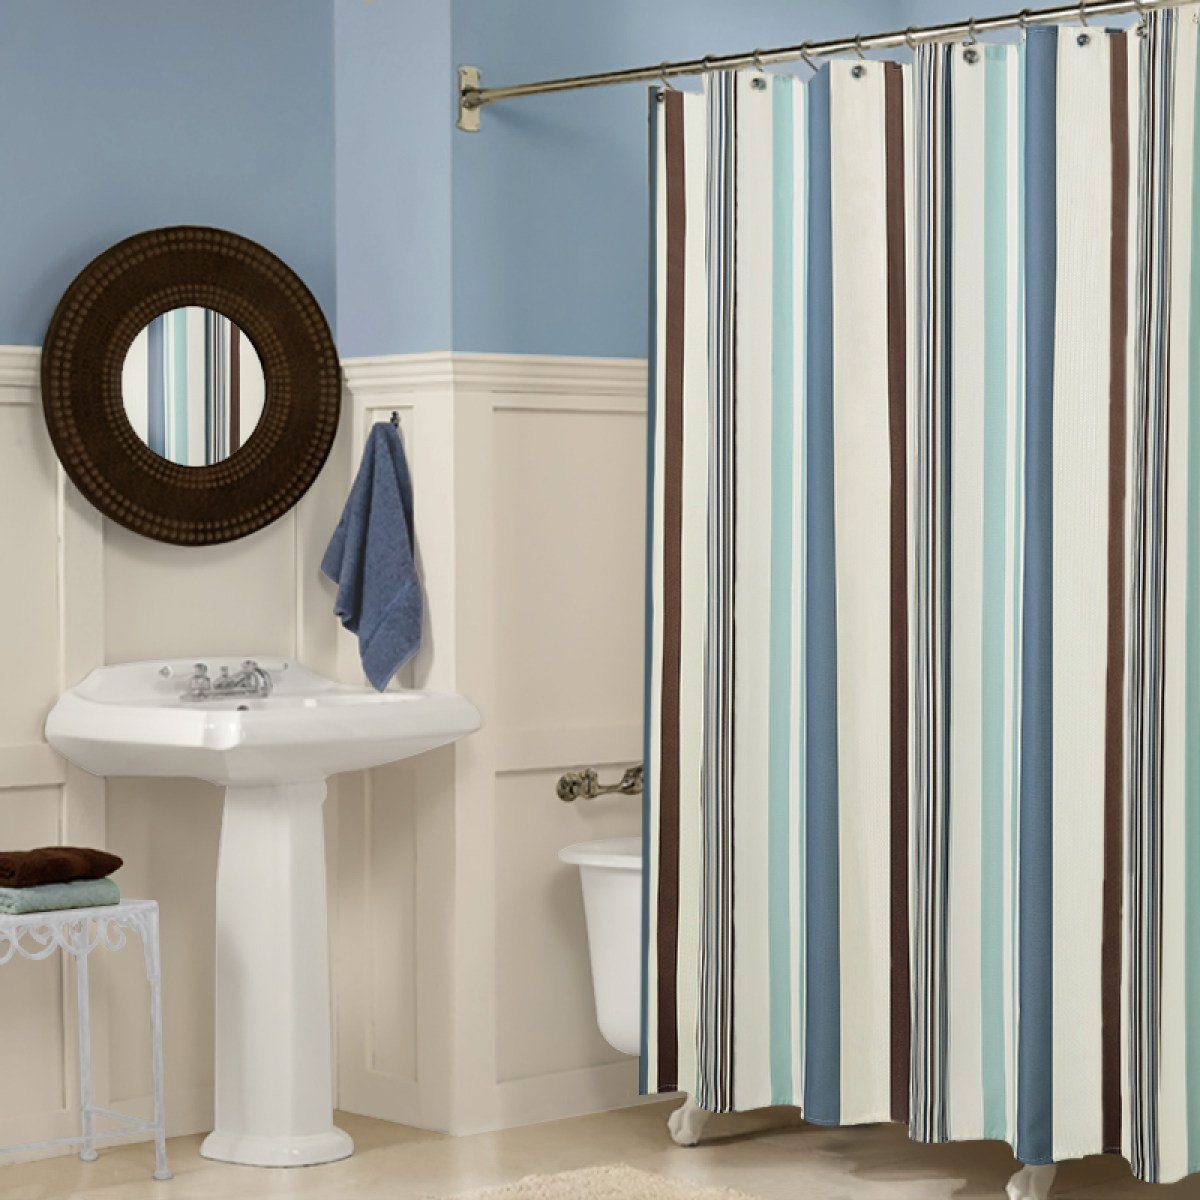 Color : Stripe, Size : 120 * 200cm shower curtain JUN partition curtain bathroom waterproof thickening mold curtains bathroom accessories stripes durable